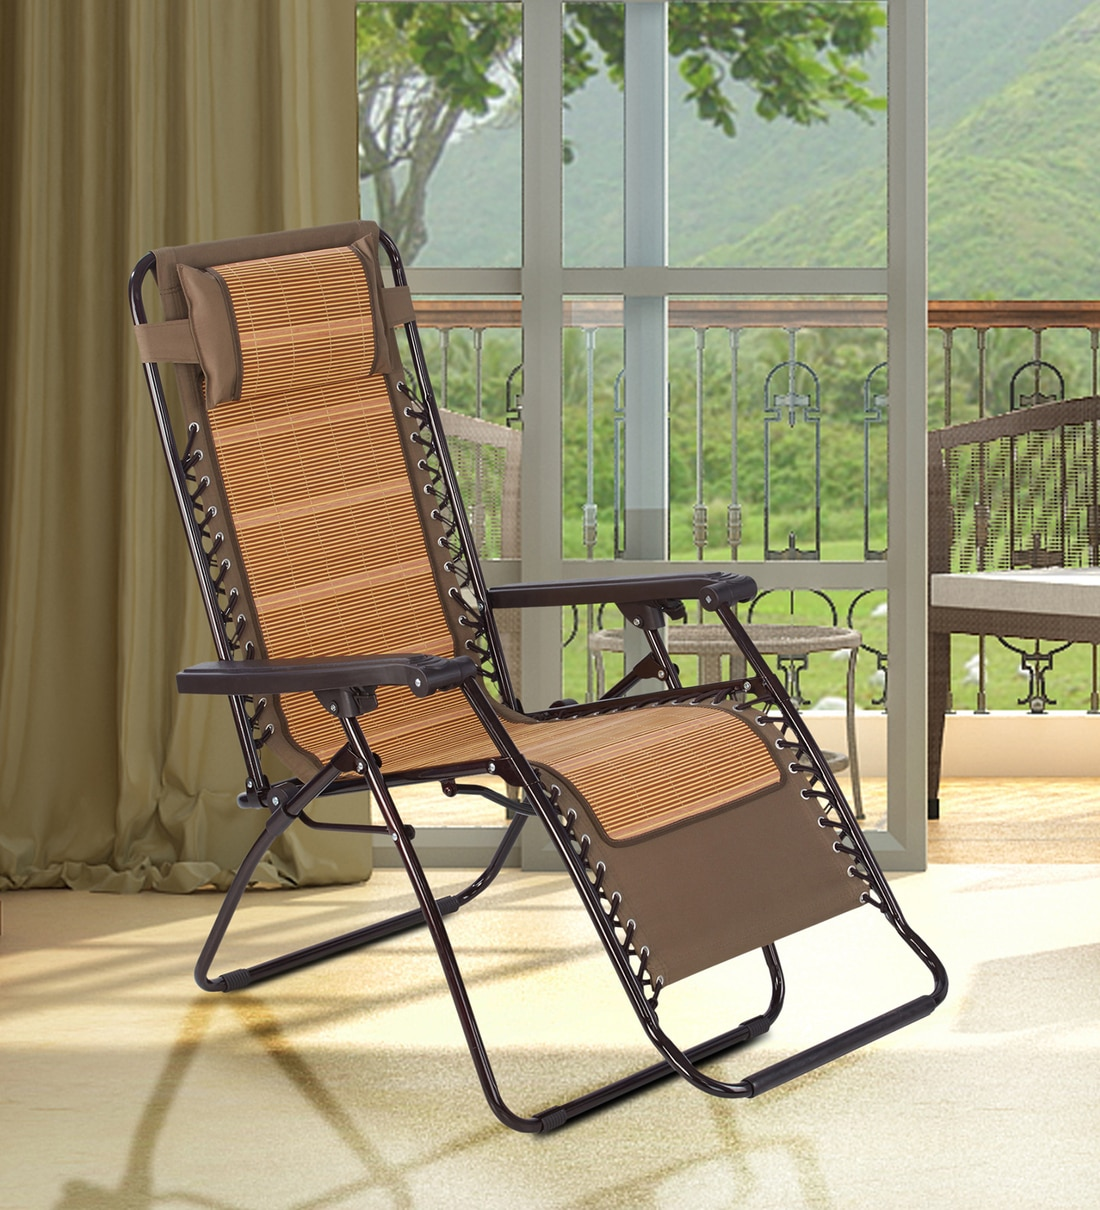 lounge new patio chair in bamboo colour